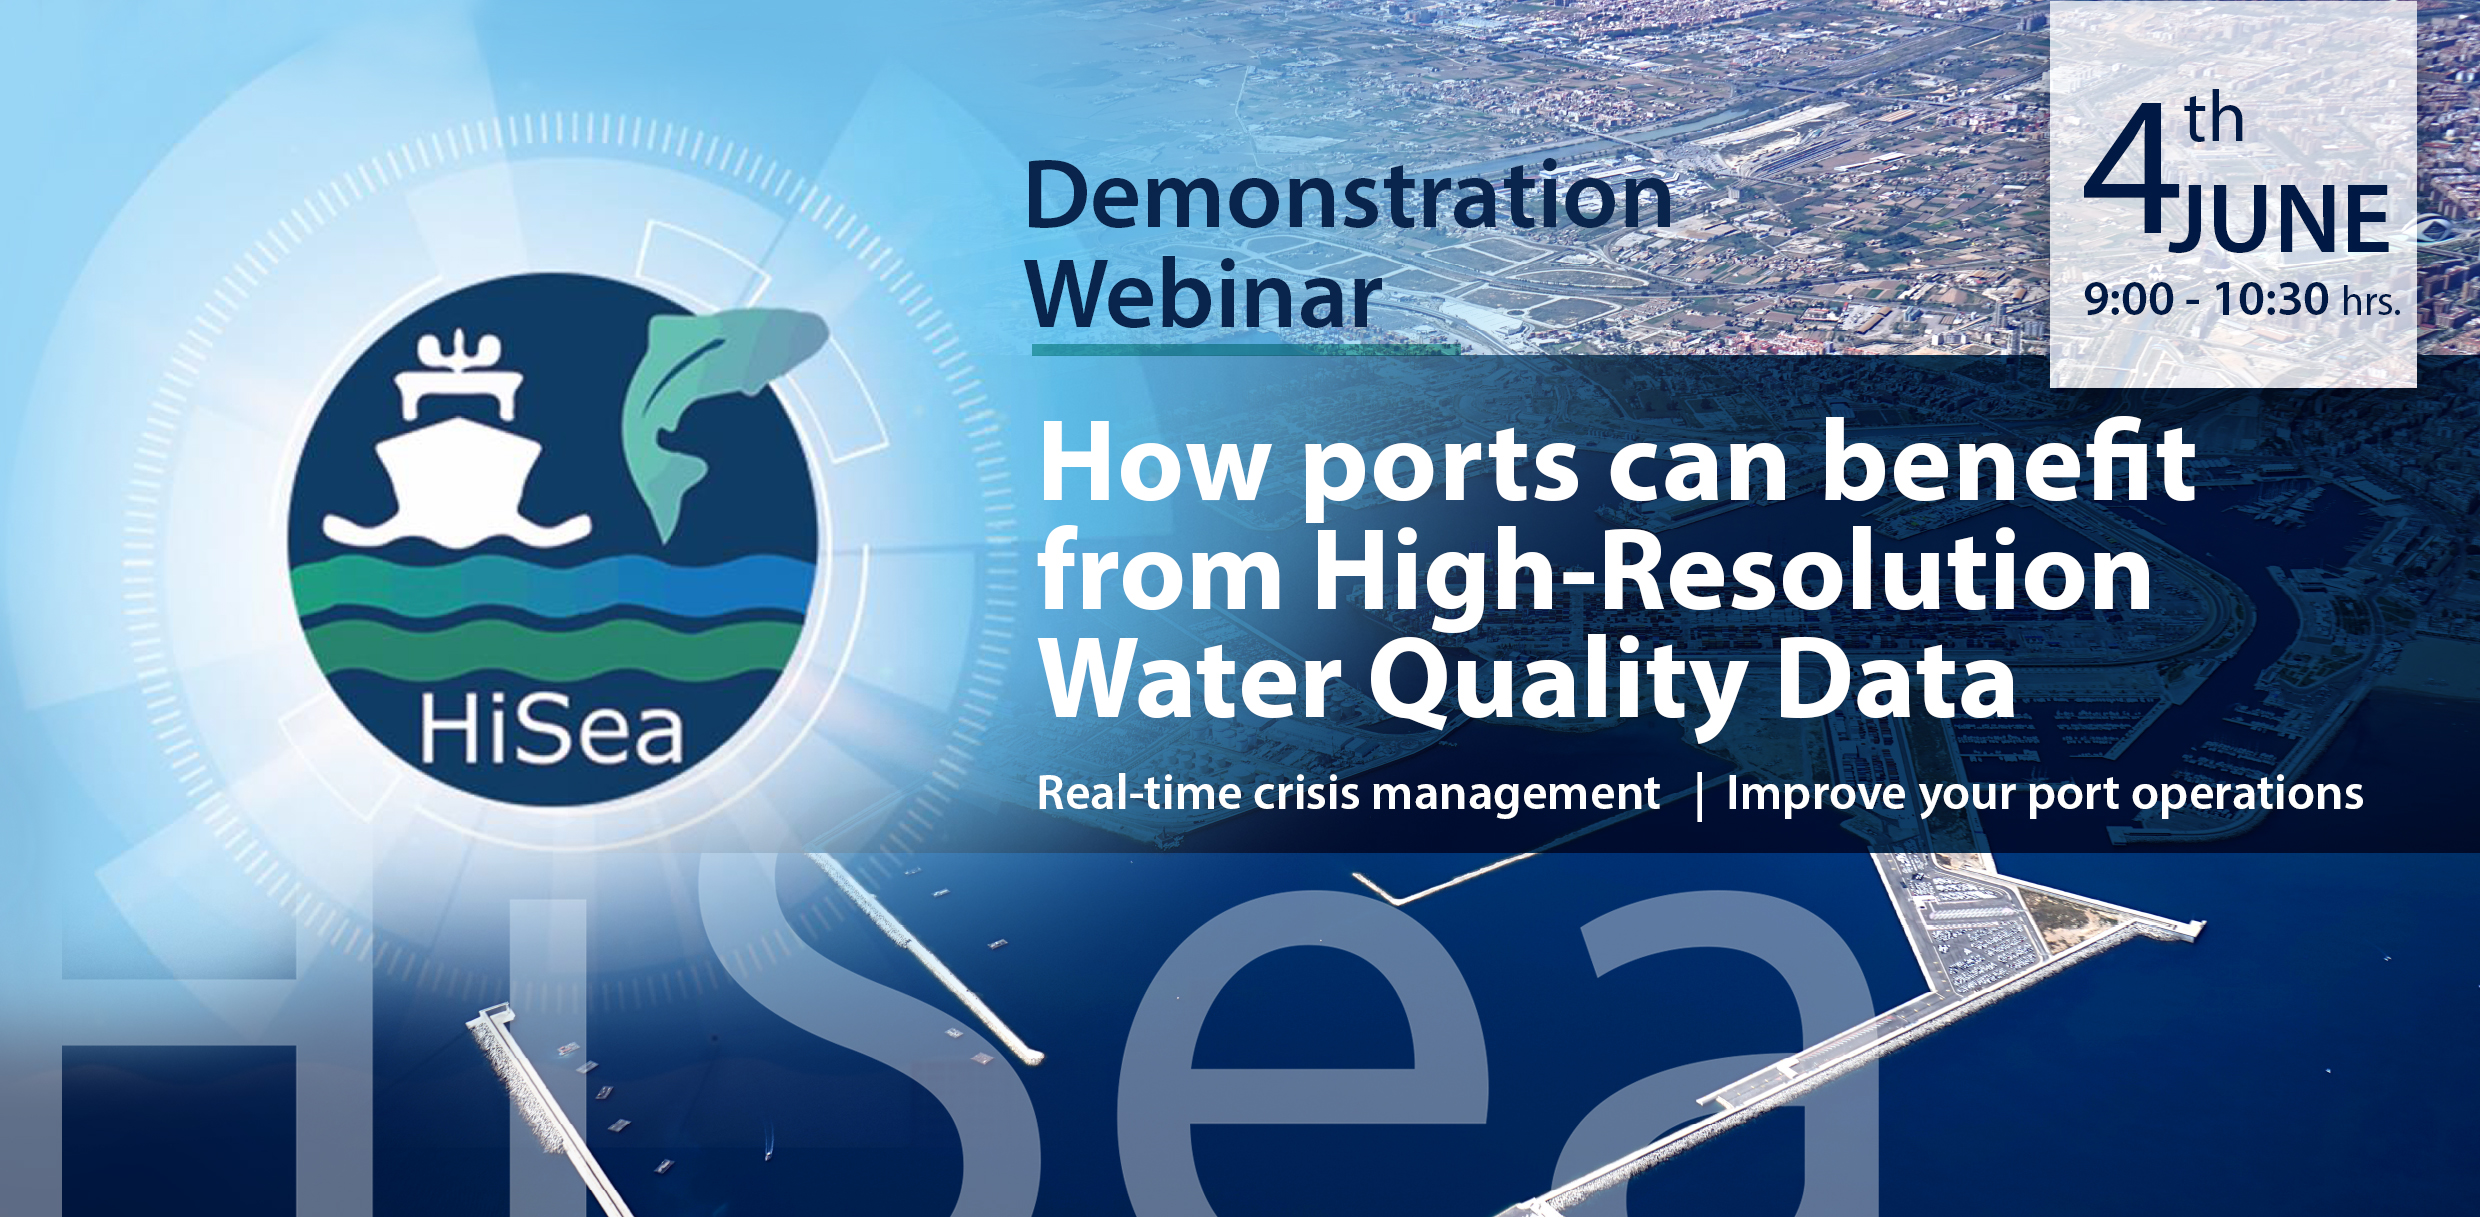 HiSea to demonstrate the value of high-resolution water quality data services brings to sea ports